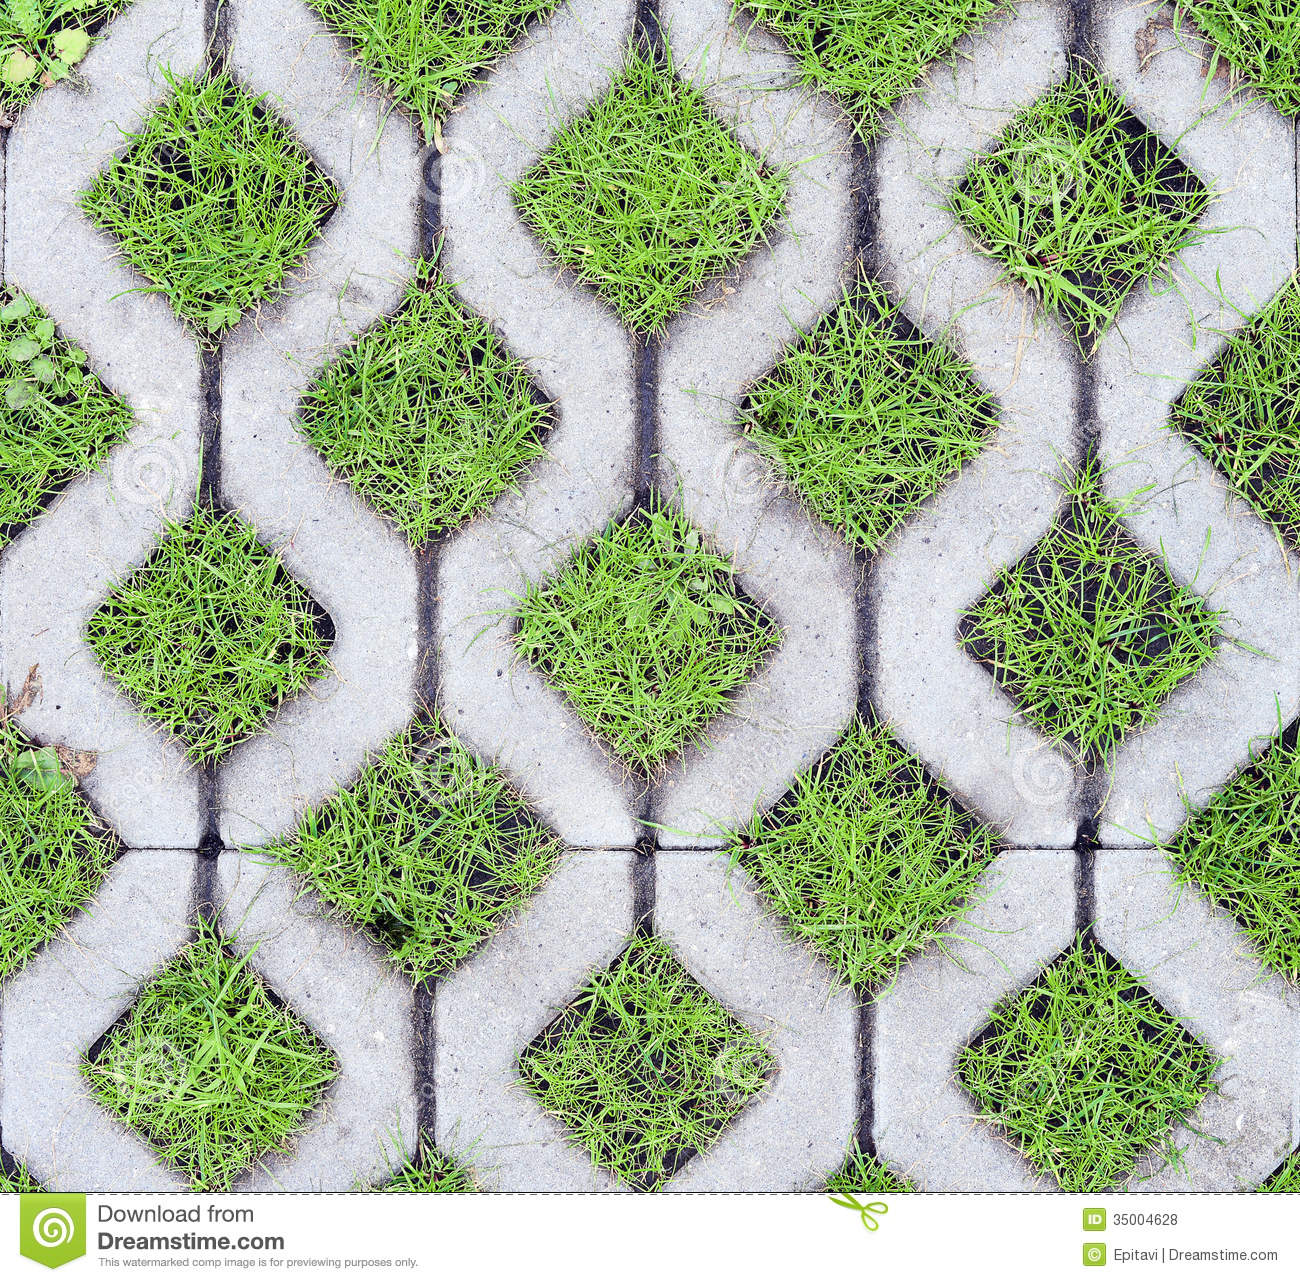 Eco-friendly parking stock photo. Image of green, concrete